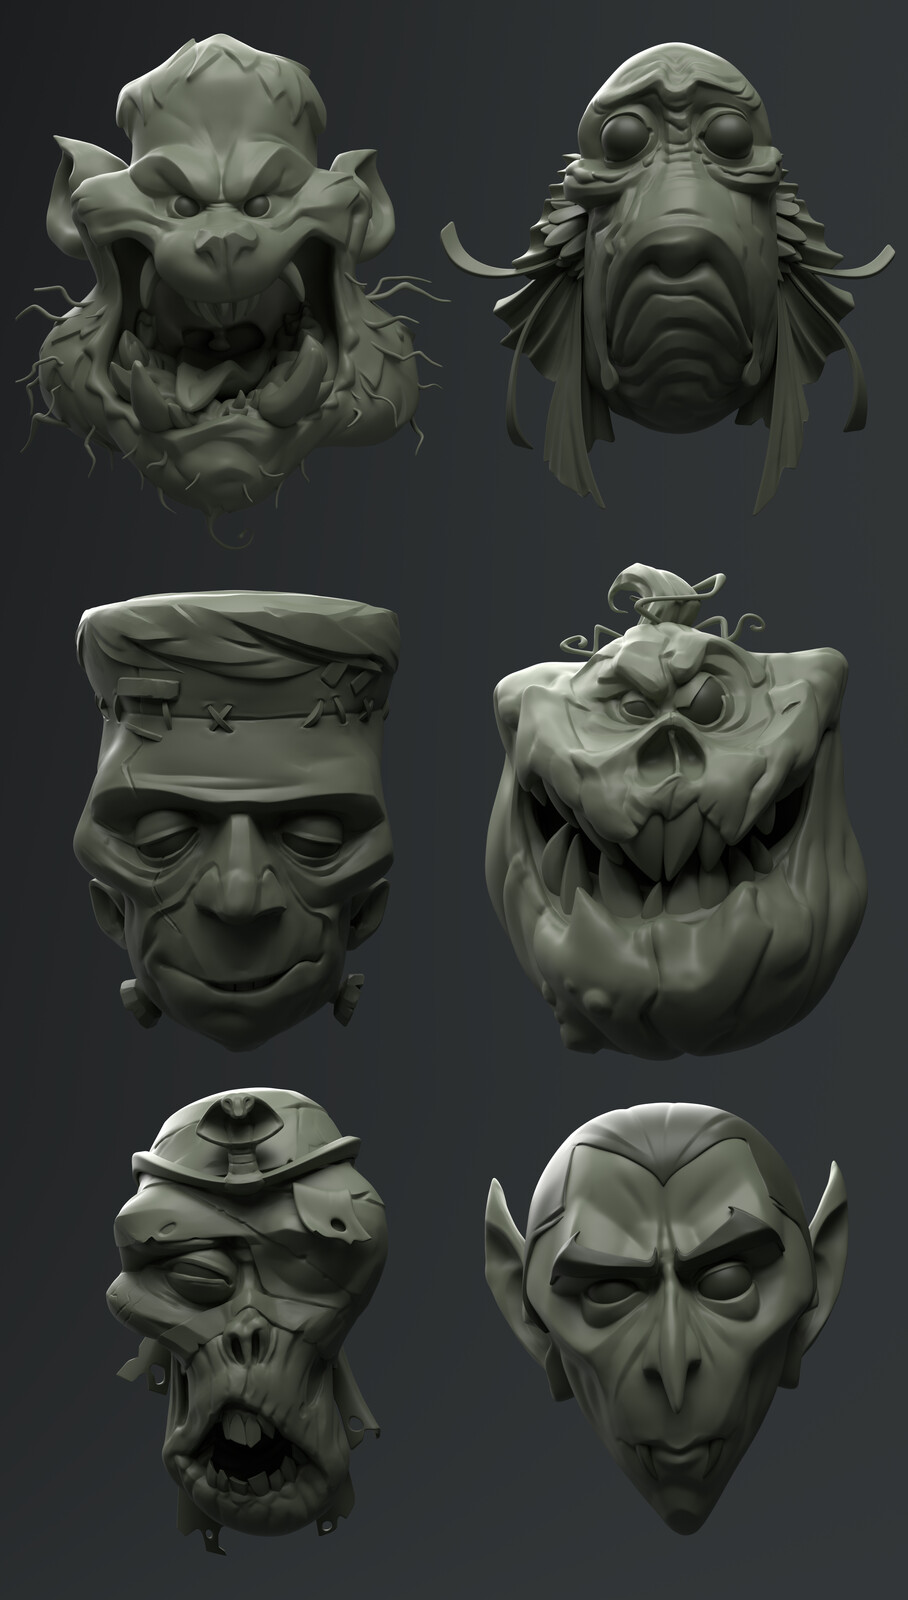 Wall of Monsters  - Sculpt